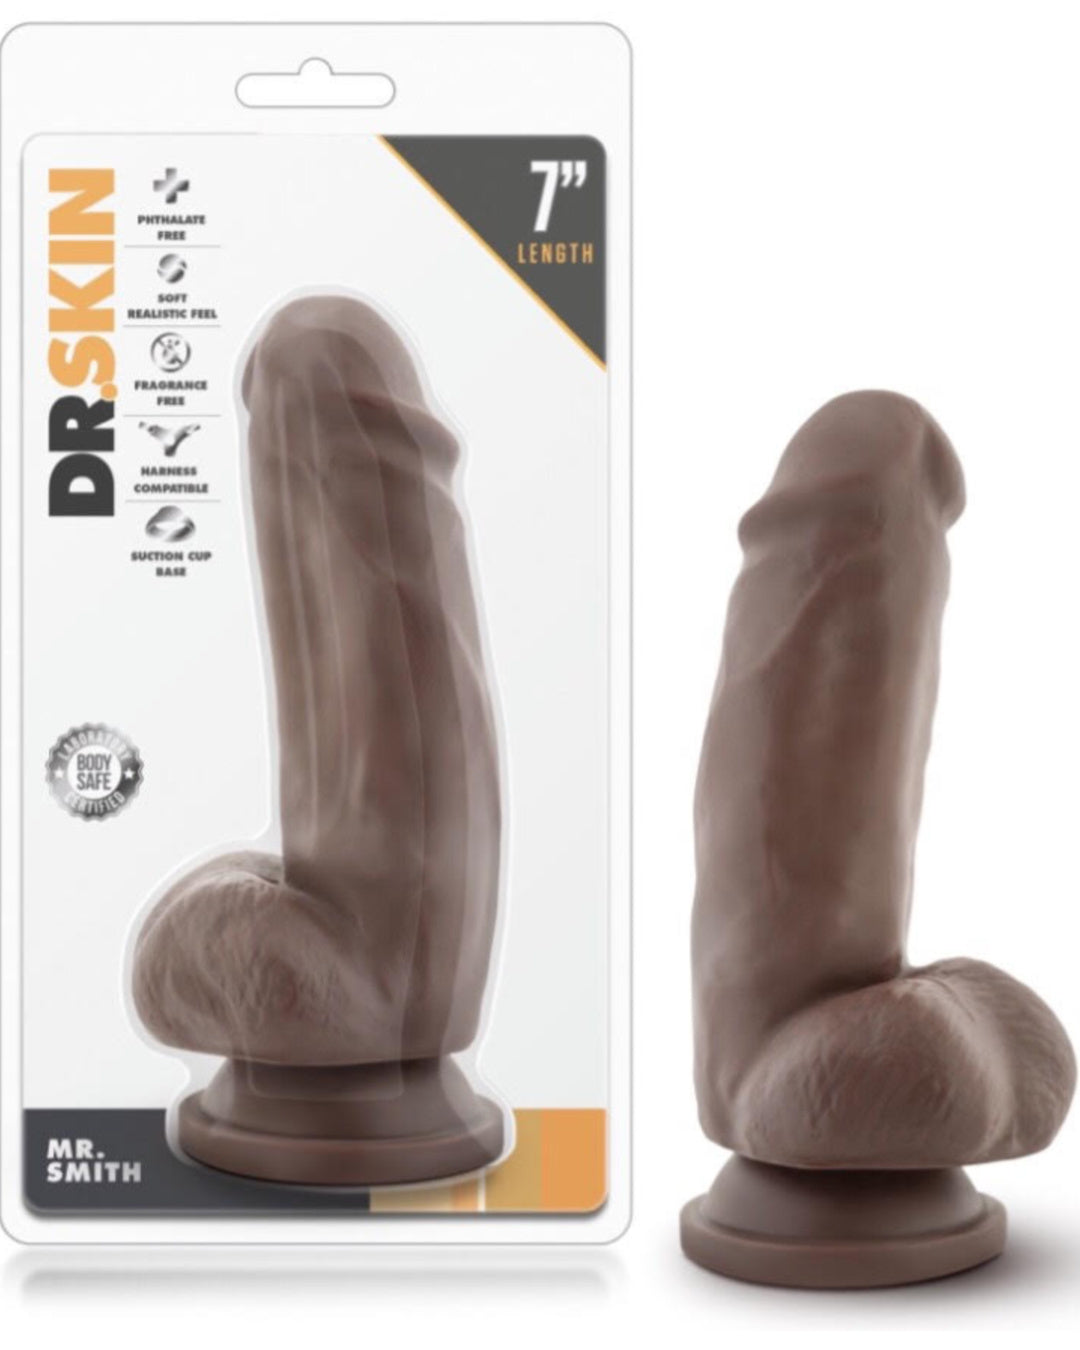 Dr Skin Mr Smith 7 Inch Dildo with Suction Cup by Blush Novelties - Chocolate in package